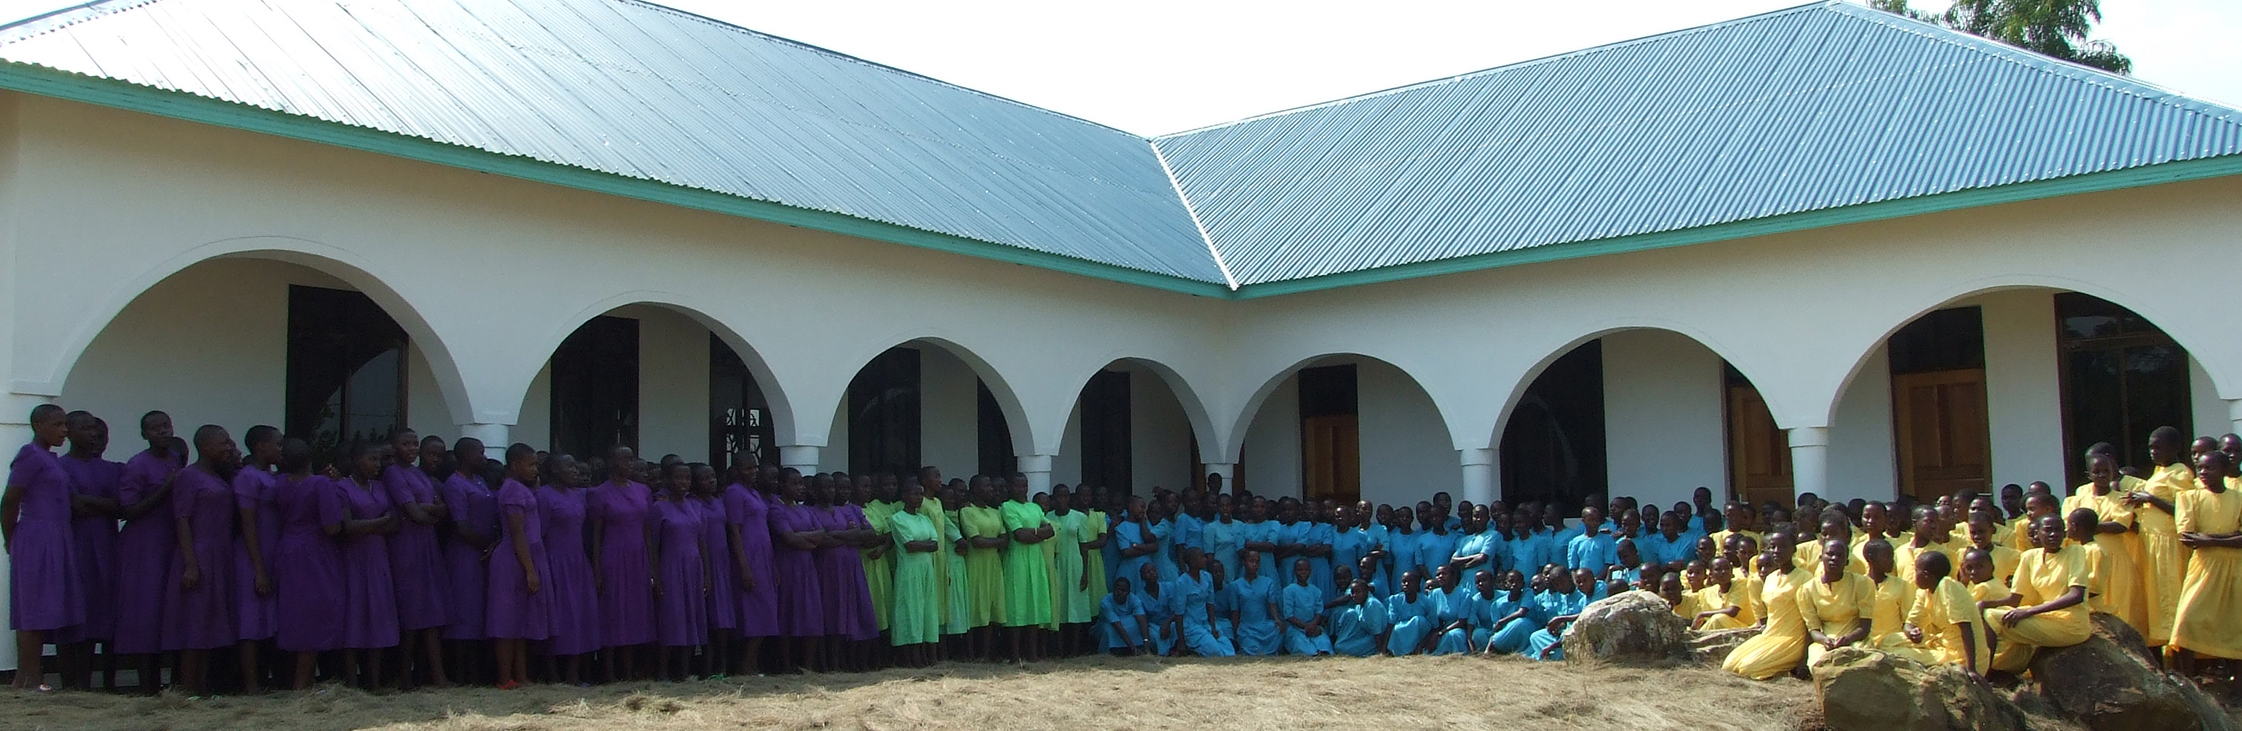 Insomnia Fairtrade Project - Hekima Girls School, Tanzania